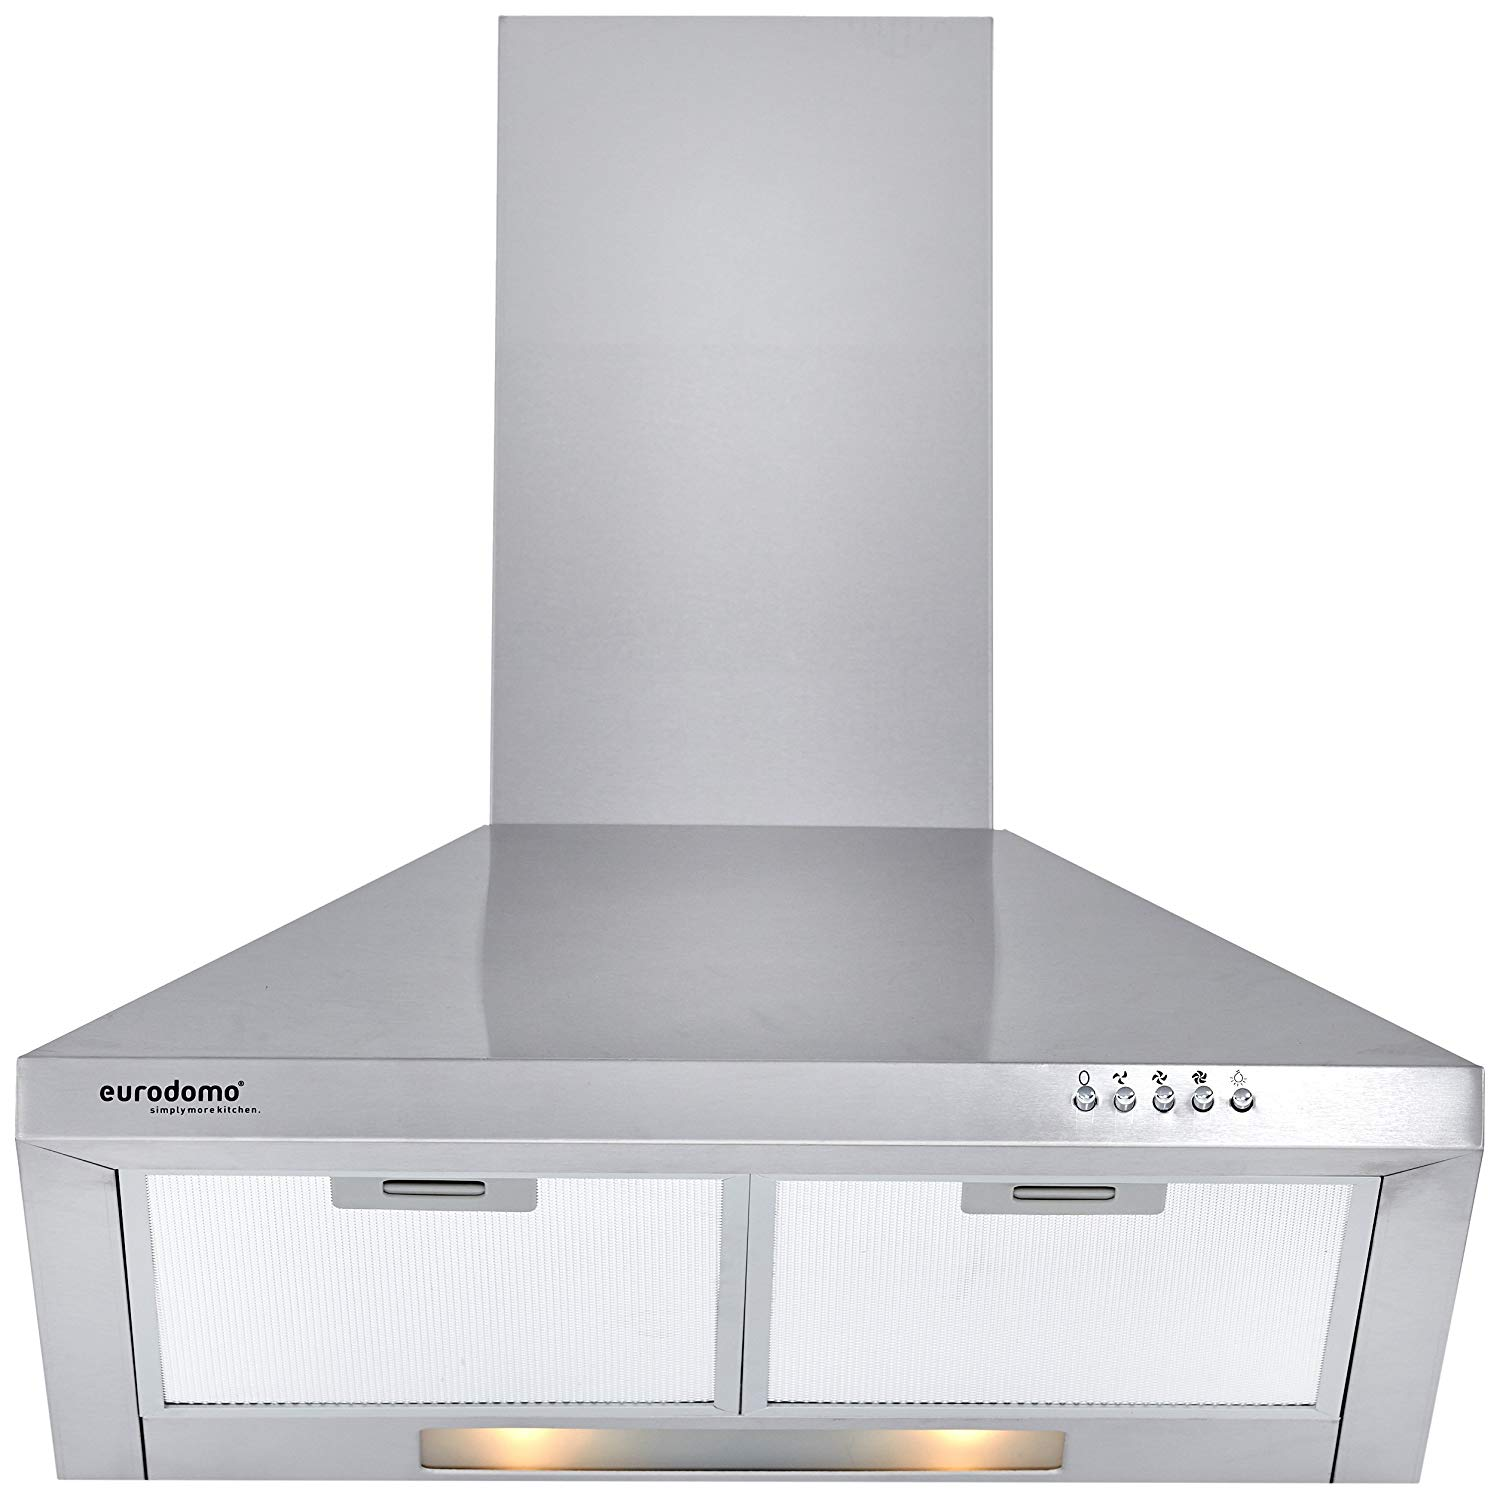 Top 10 Kitchen Brands In Malaysia With The Best Kitchen: Gadget Review: Top 10 Best Kitchen Chimney In India With